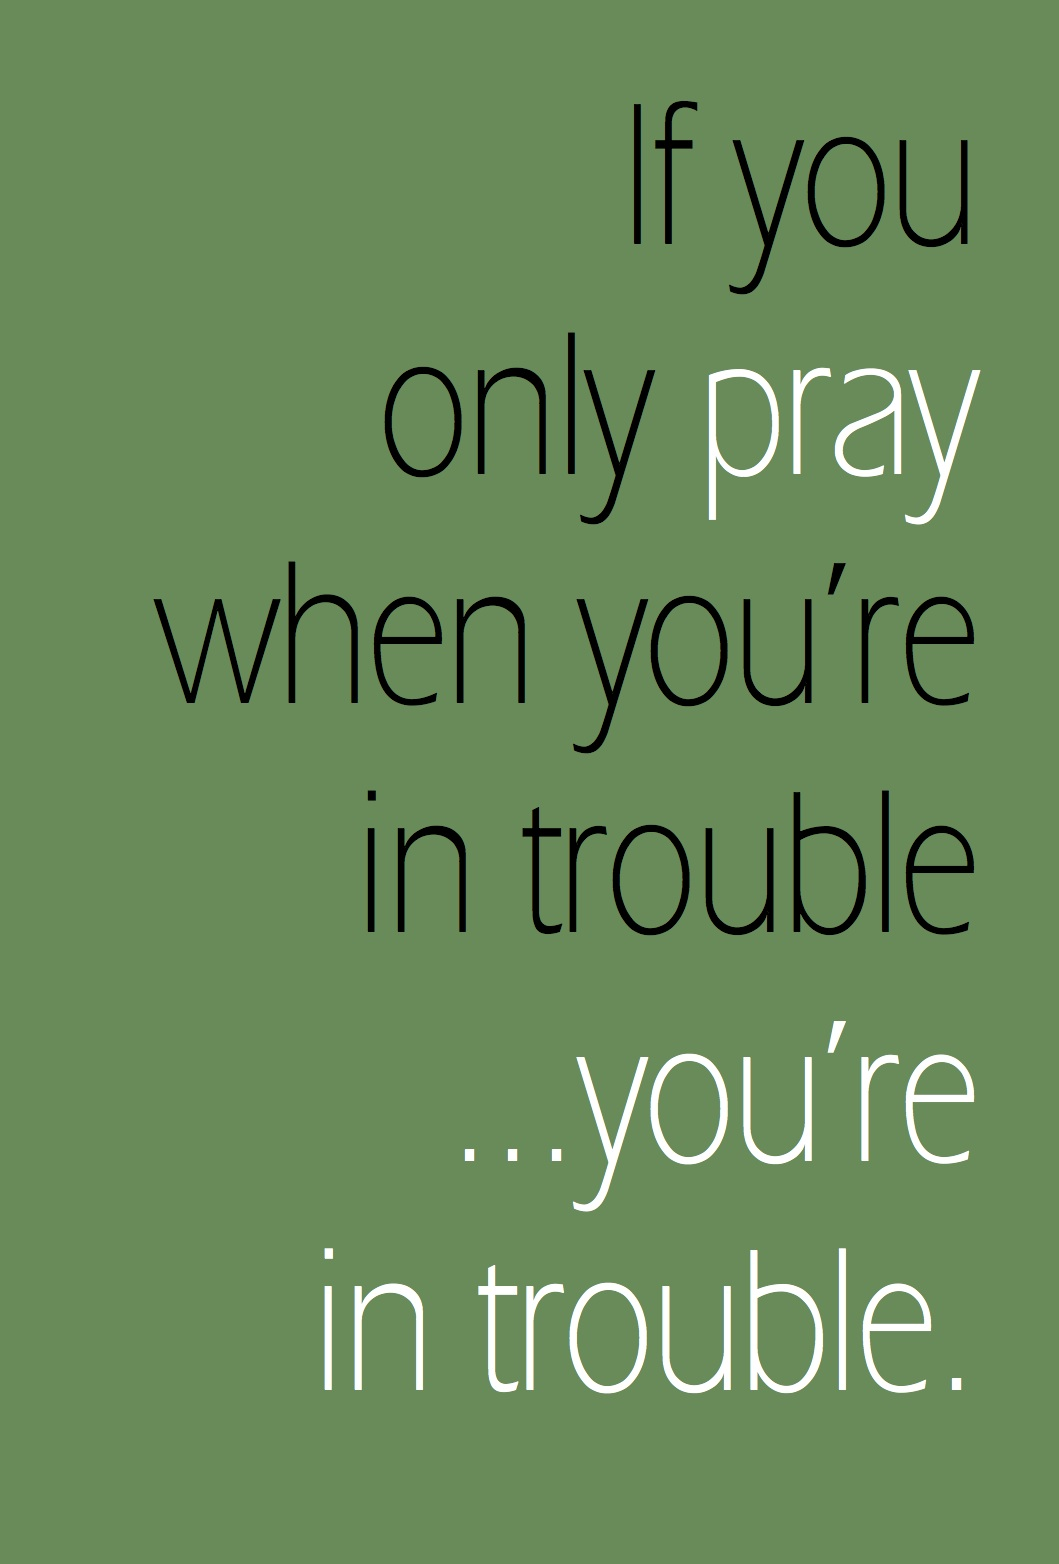 Quotes On Prayer Delectable 17 Best Images About Faith On Pinterest  Buddhism Buddhists And .